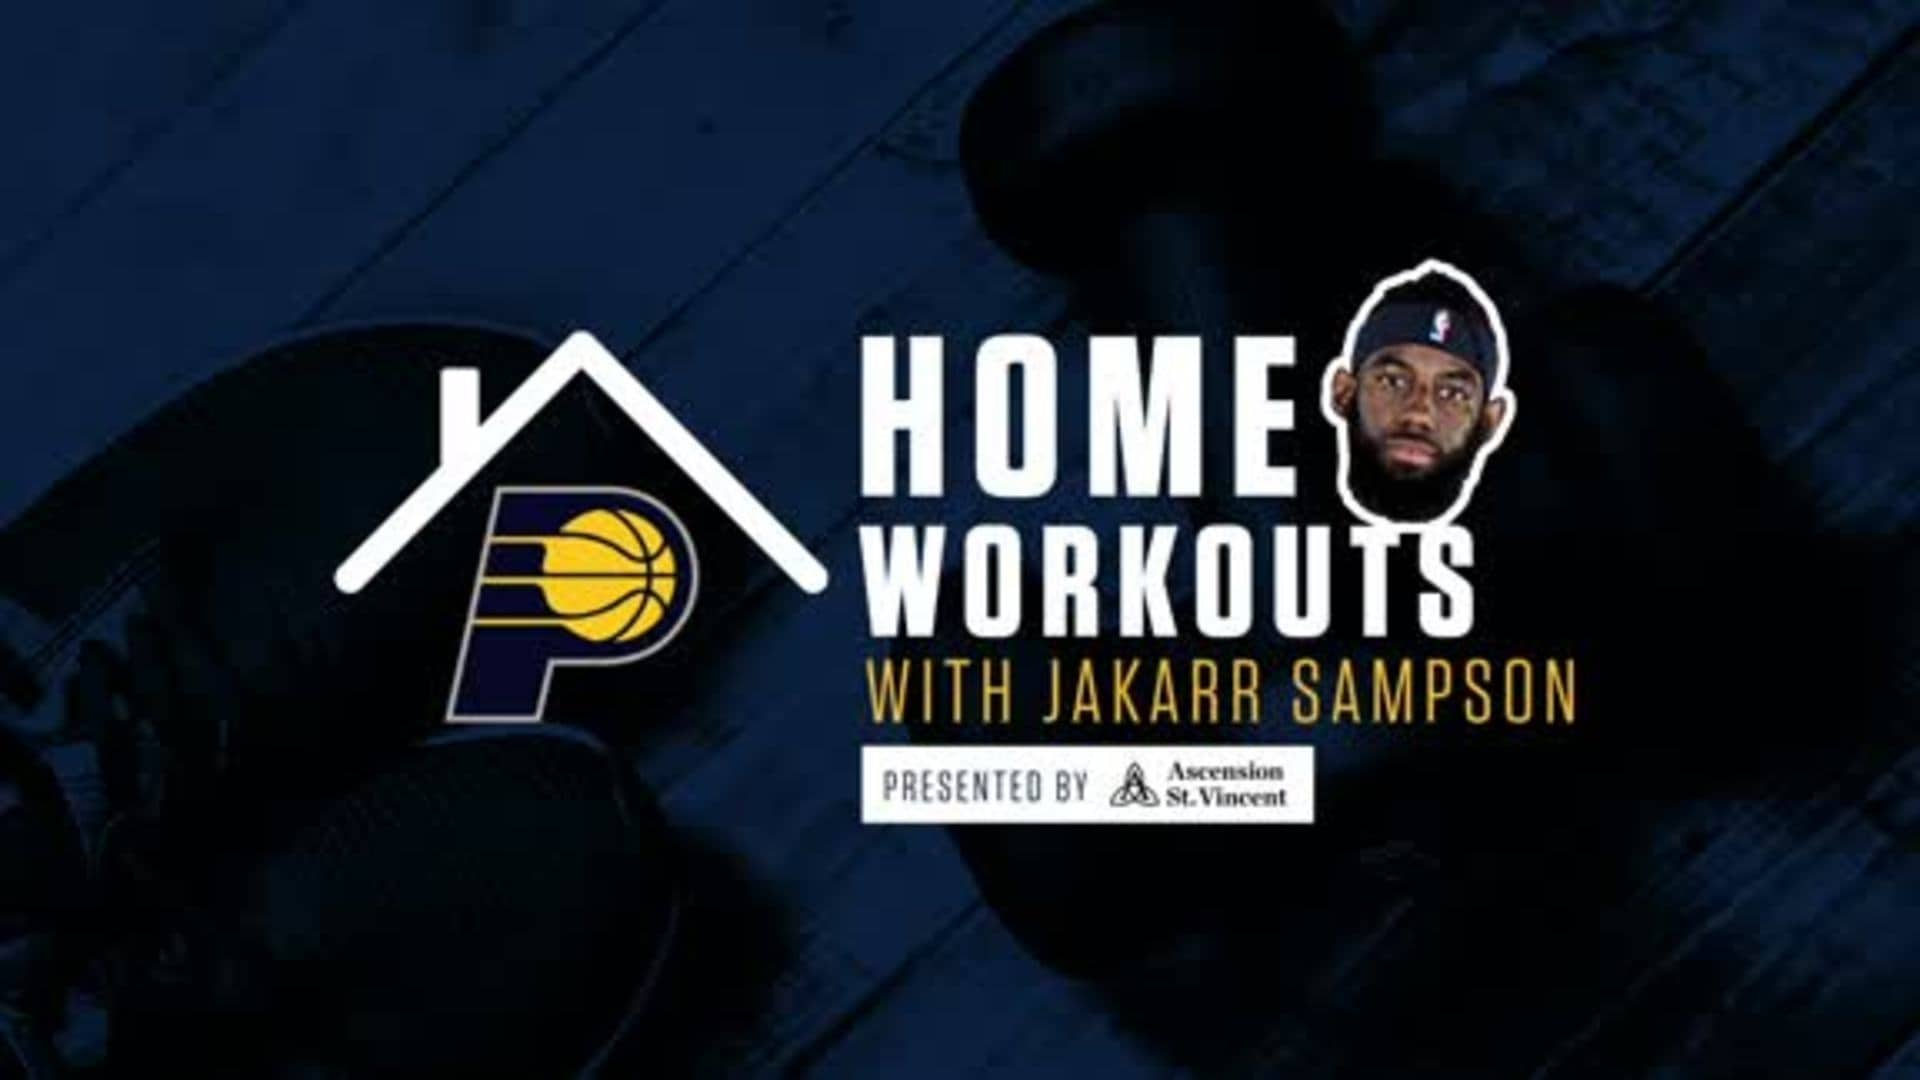 Home Workouts with JaKarr Sampson